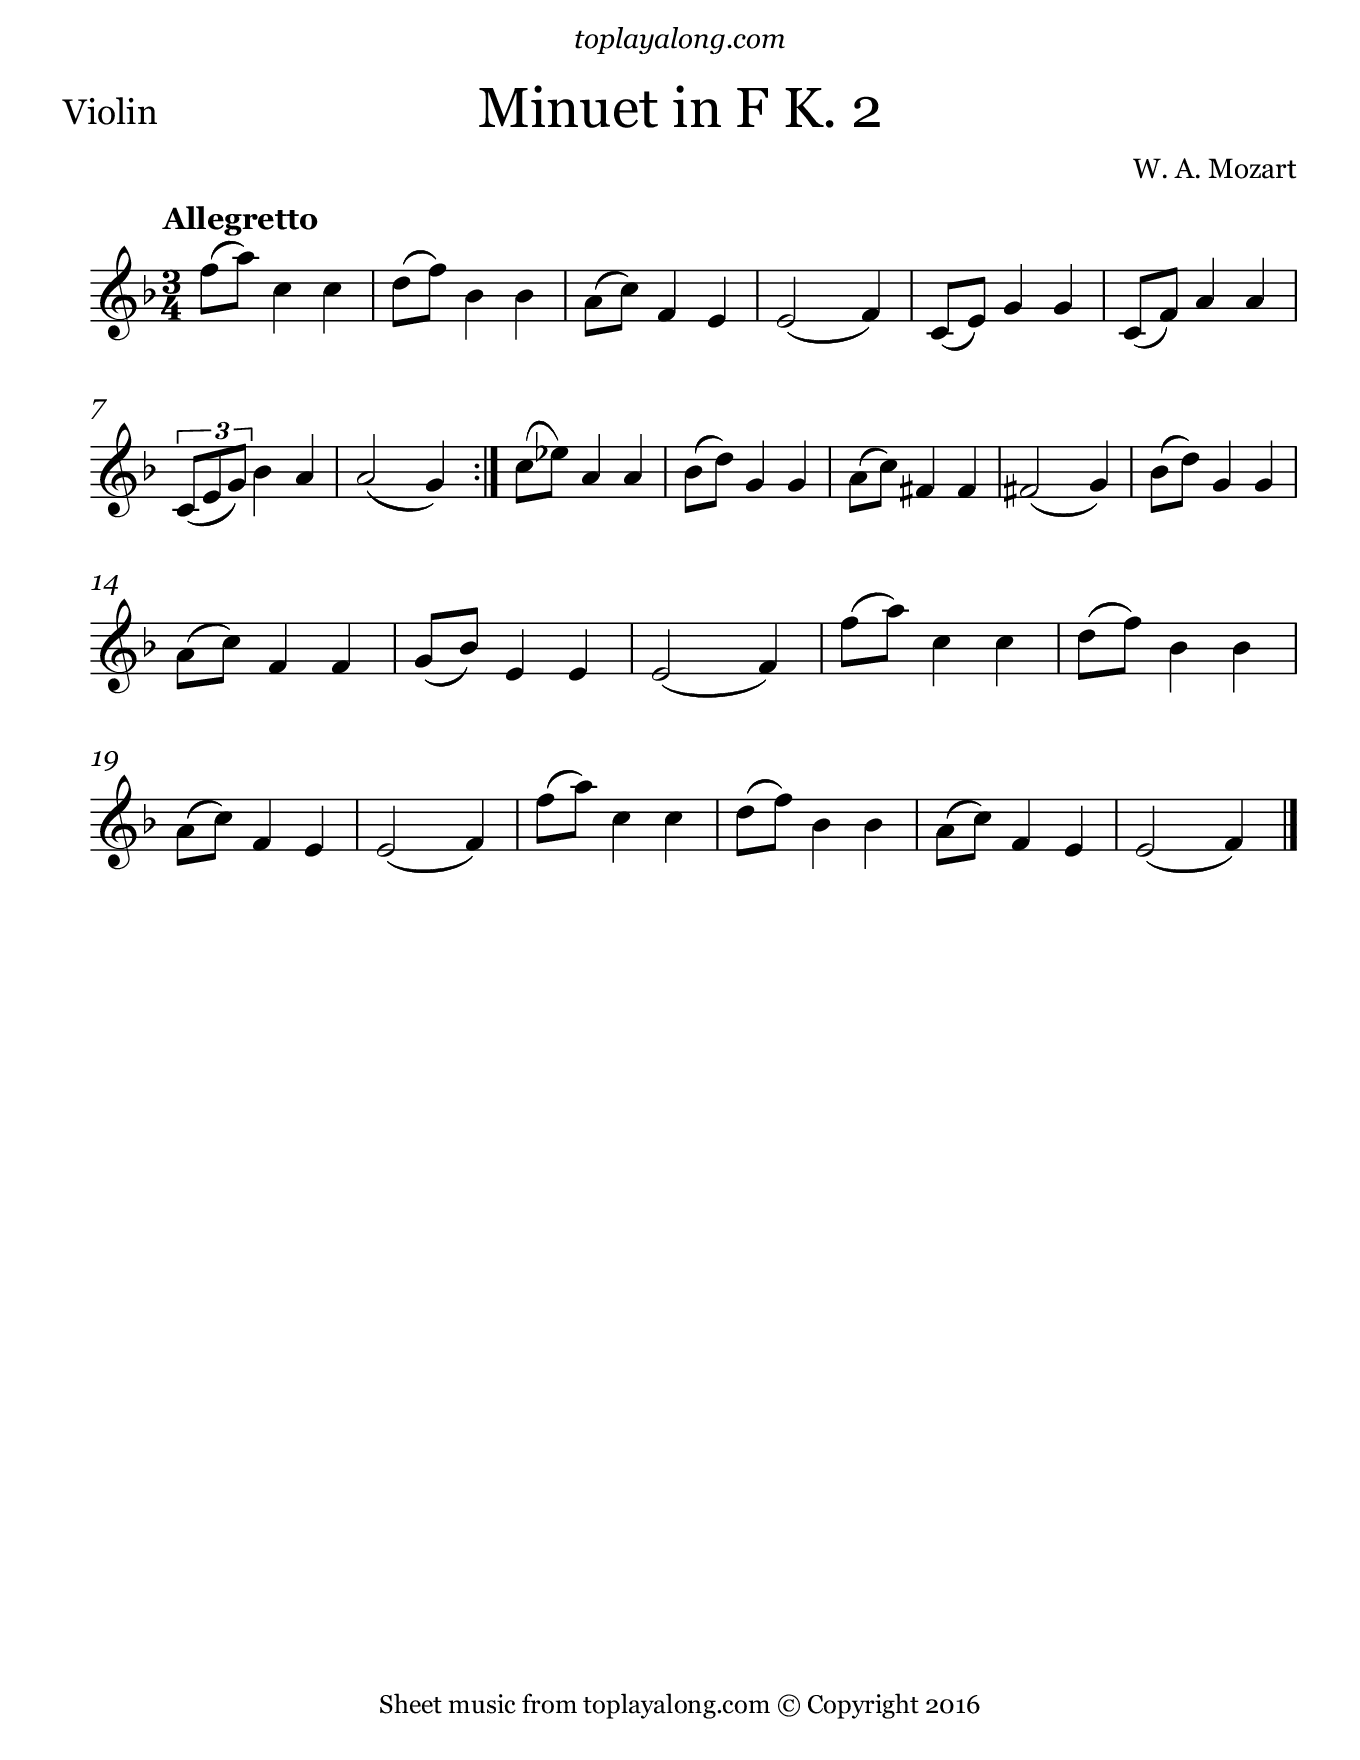 Minuet in F K. 2 by Mozart. Sheet music for Violin, page 1.